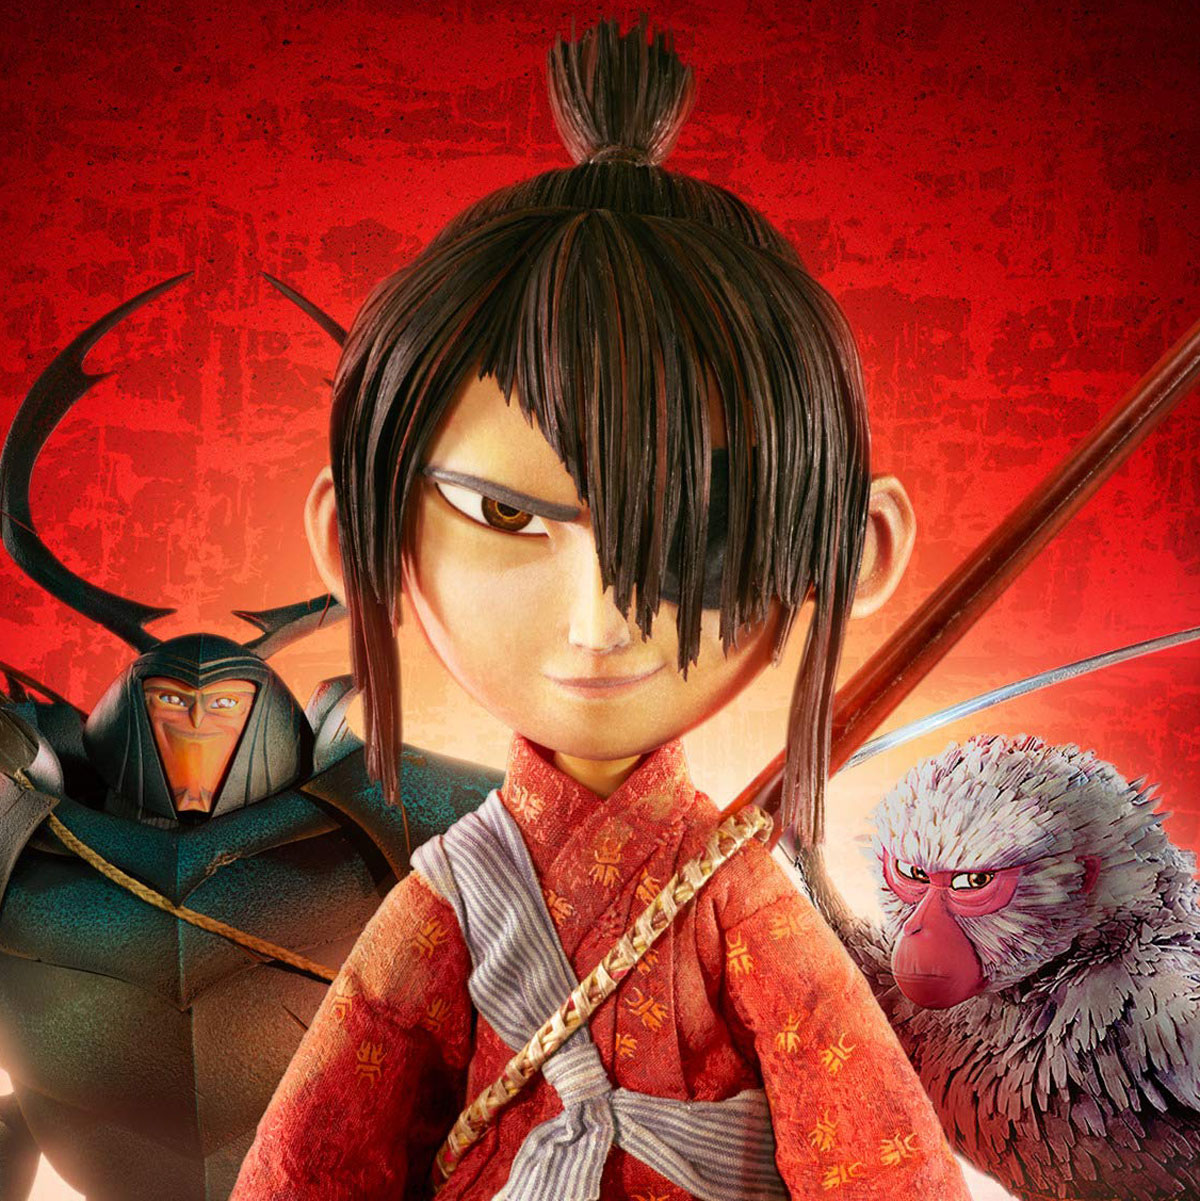 Kubo and the Two Strings characters